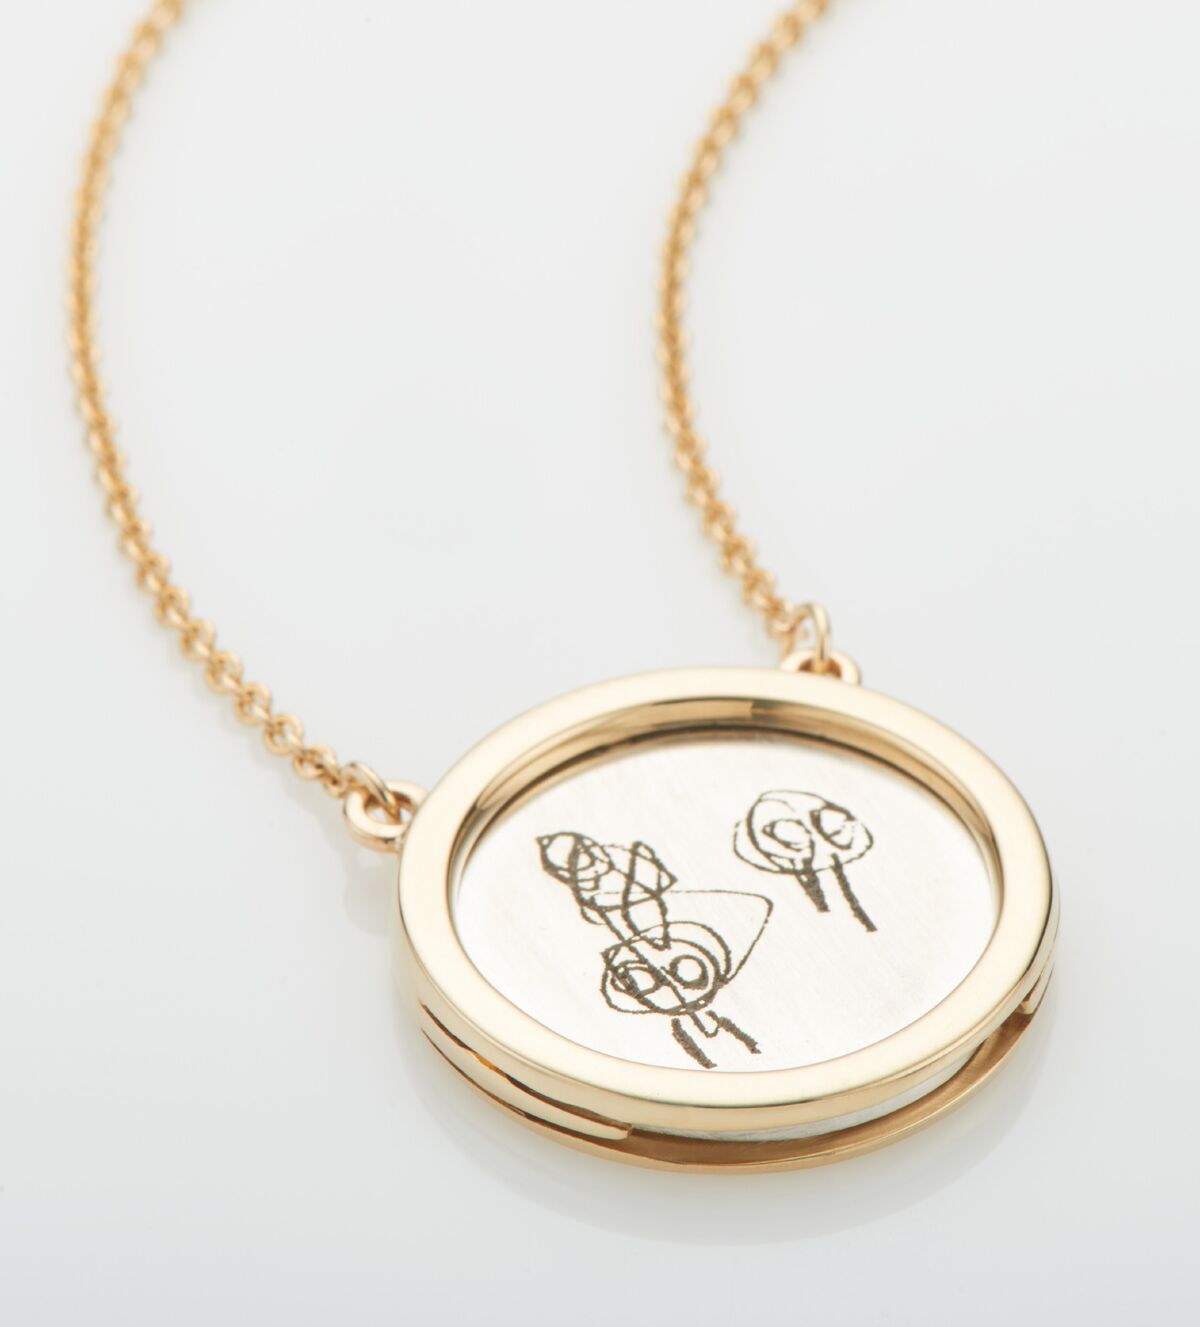 THE ELDEST - Small - Personalised Frame Pendant